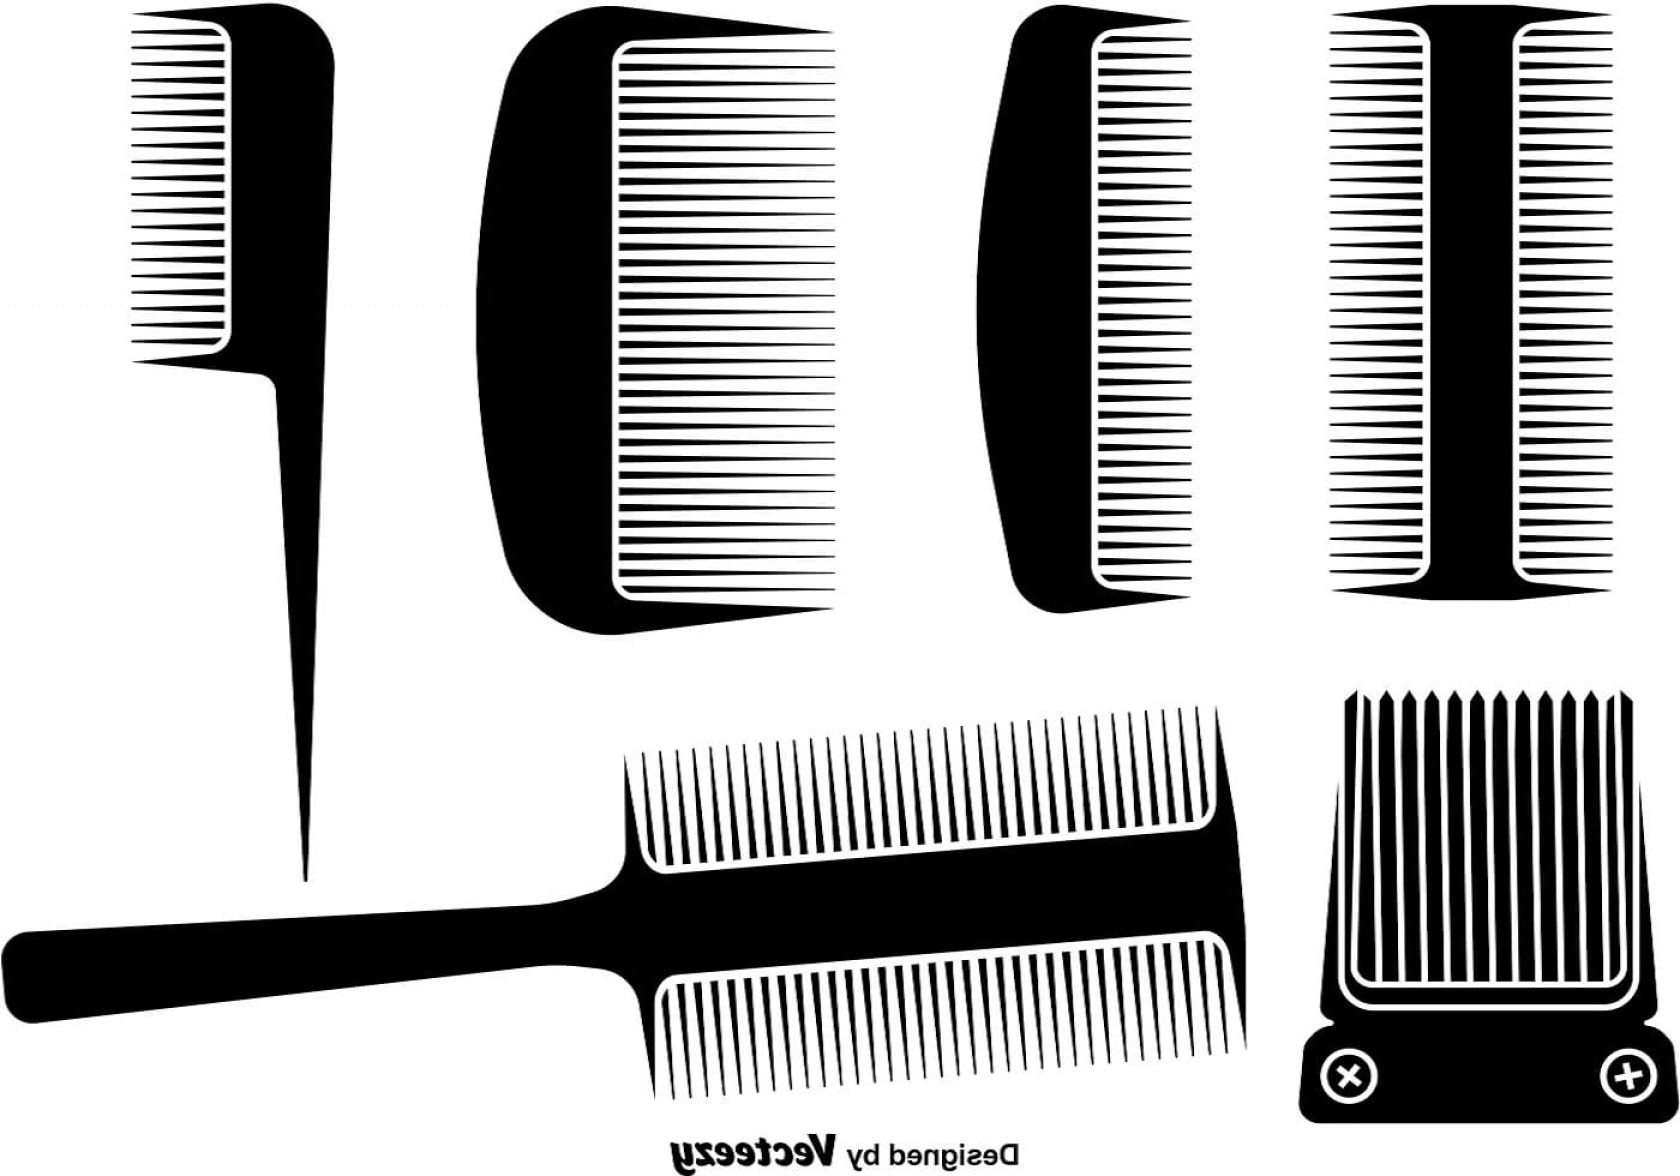 1680x1176 Hair Comb And Hair Clipper Designs Sohadacouri